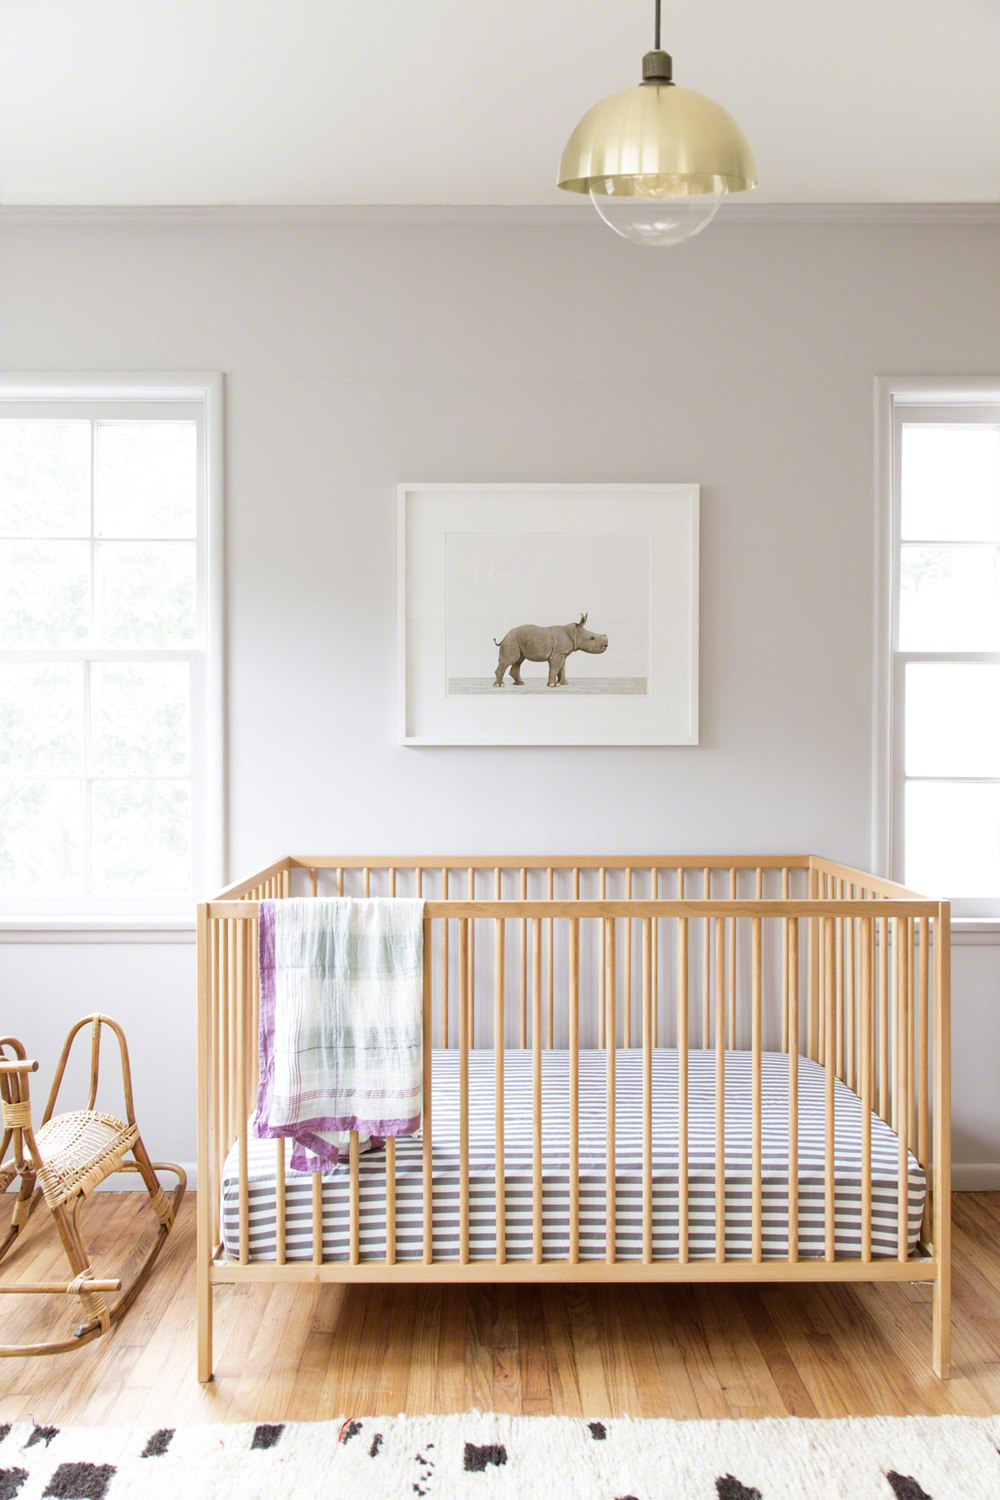 Wooden Baby Crib With Bedding A Pendant Lamp Rocking Horse